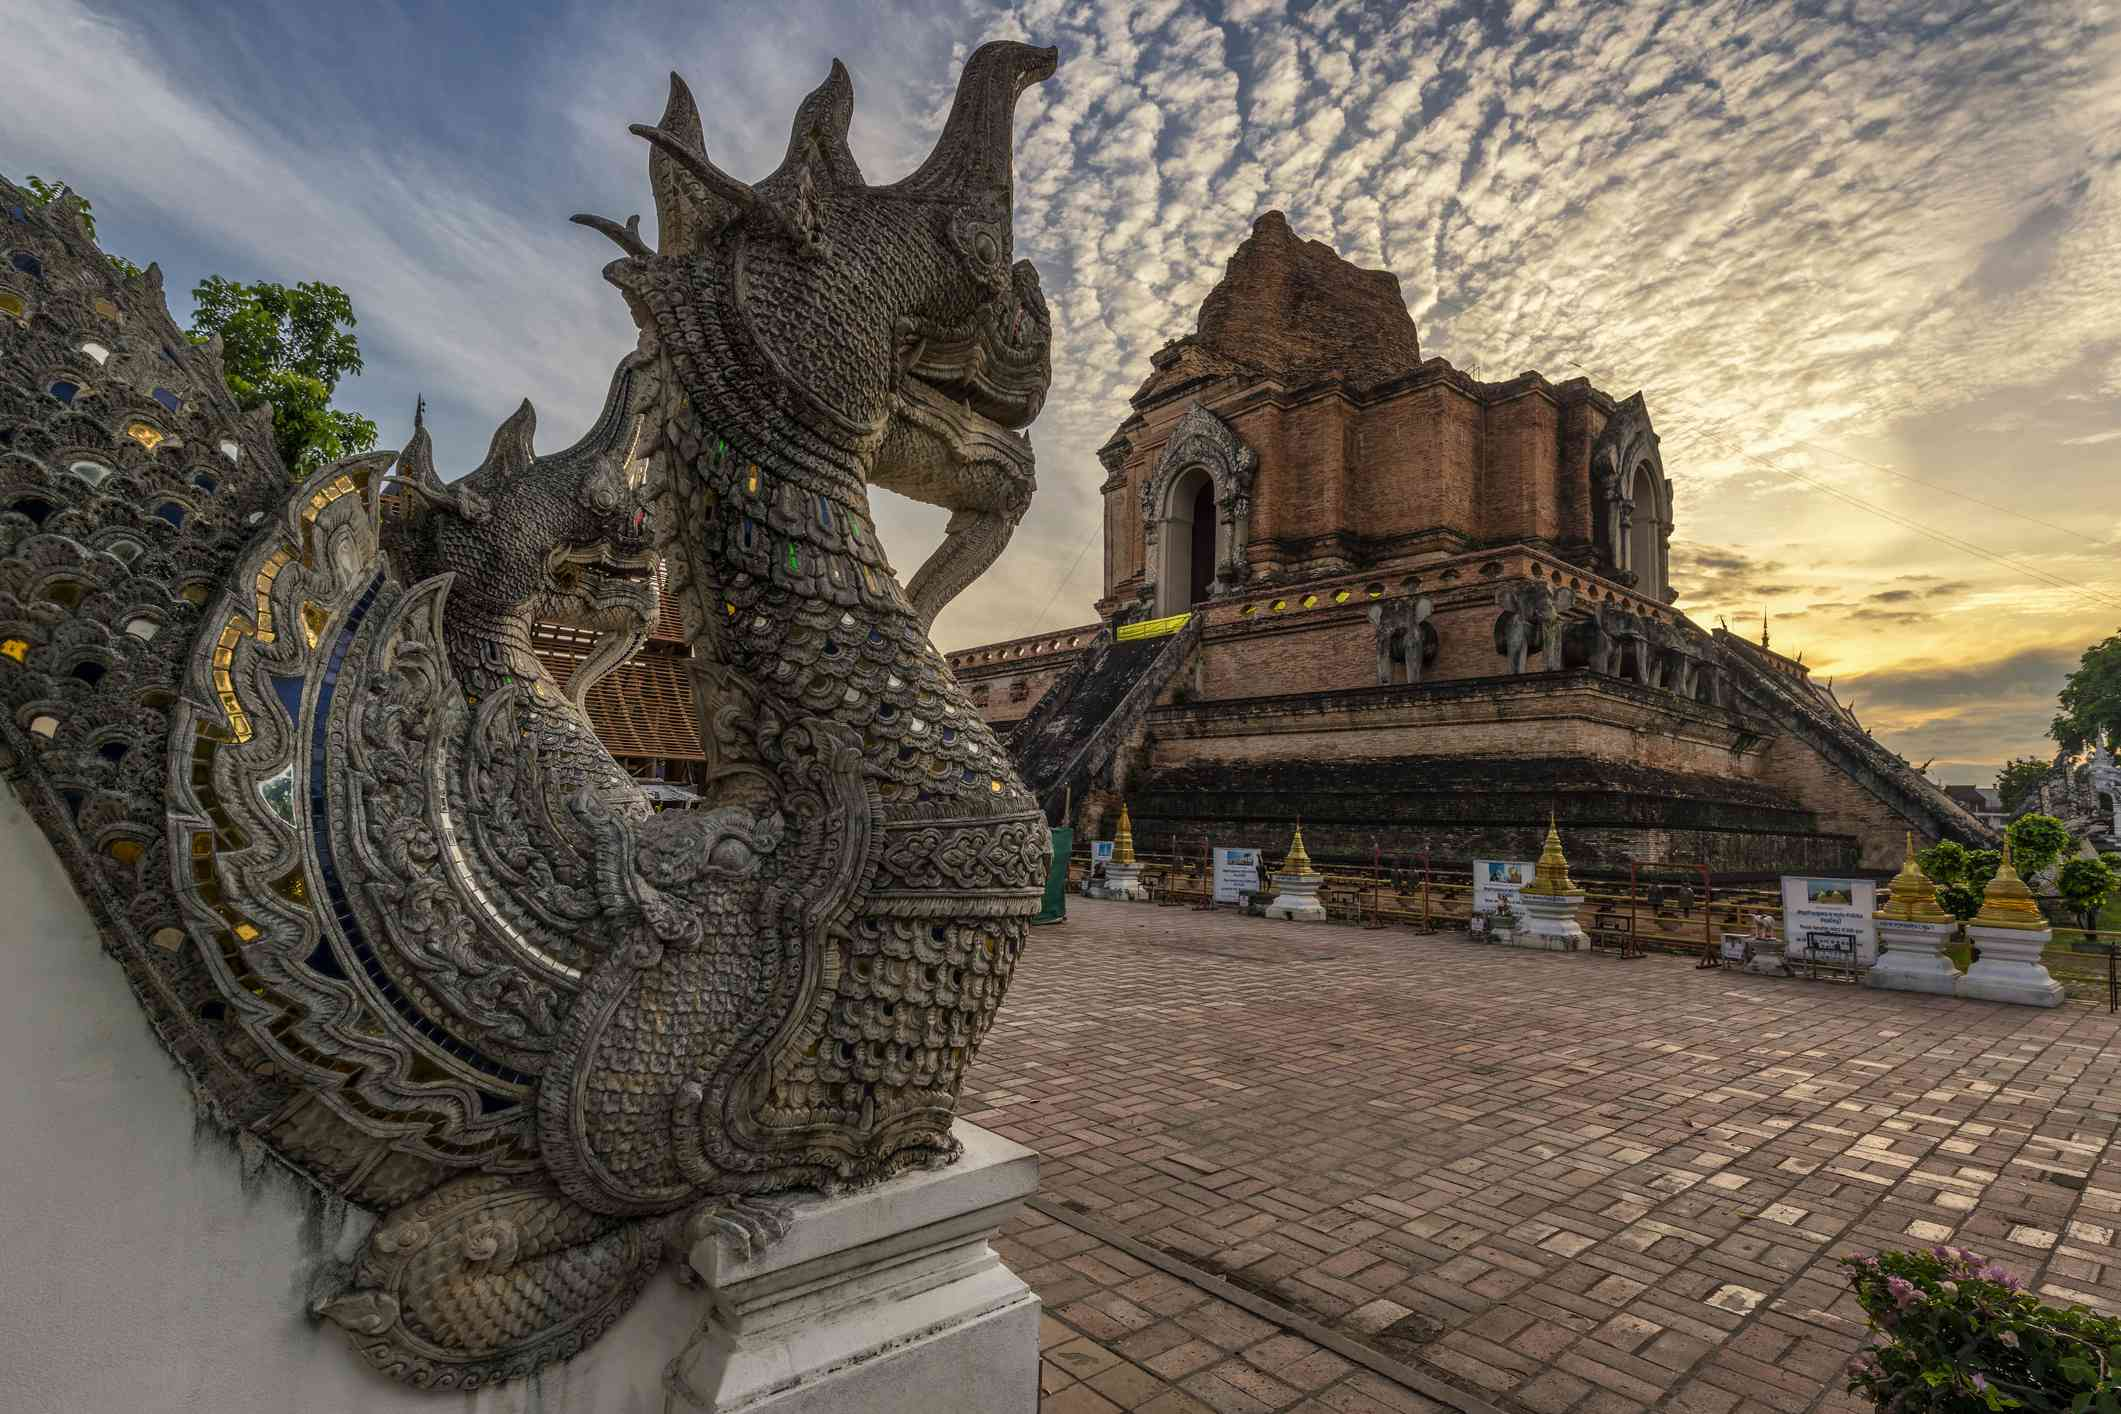 Wat Chedi Luang in Chiang Mai Old City, Thailand